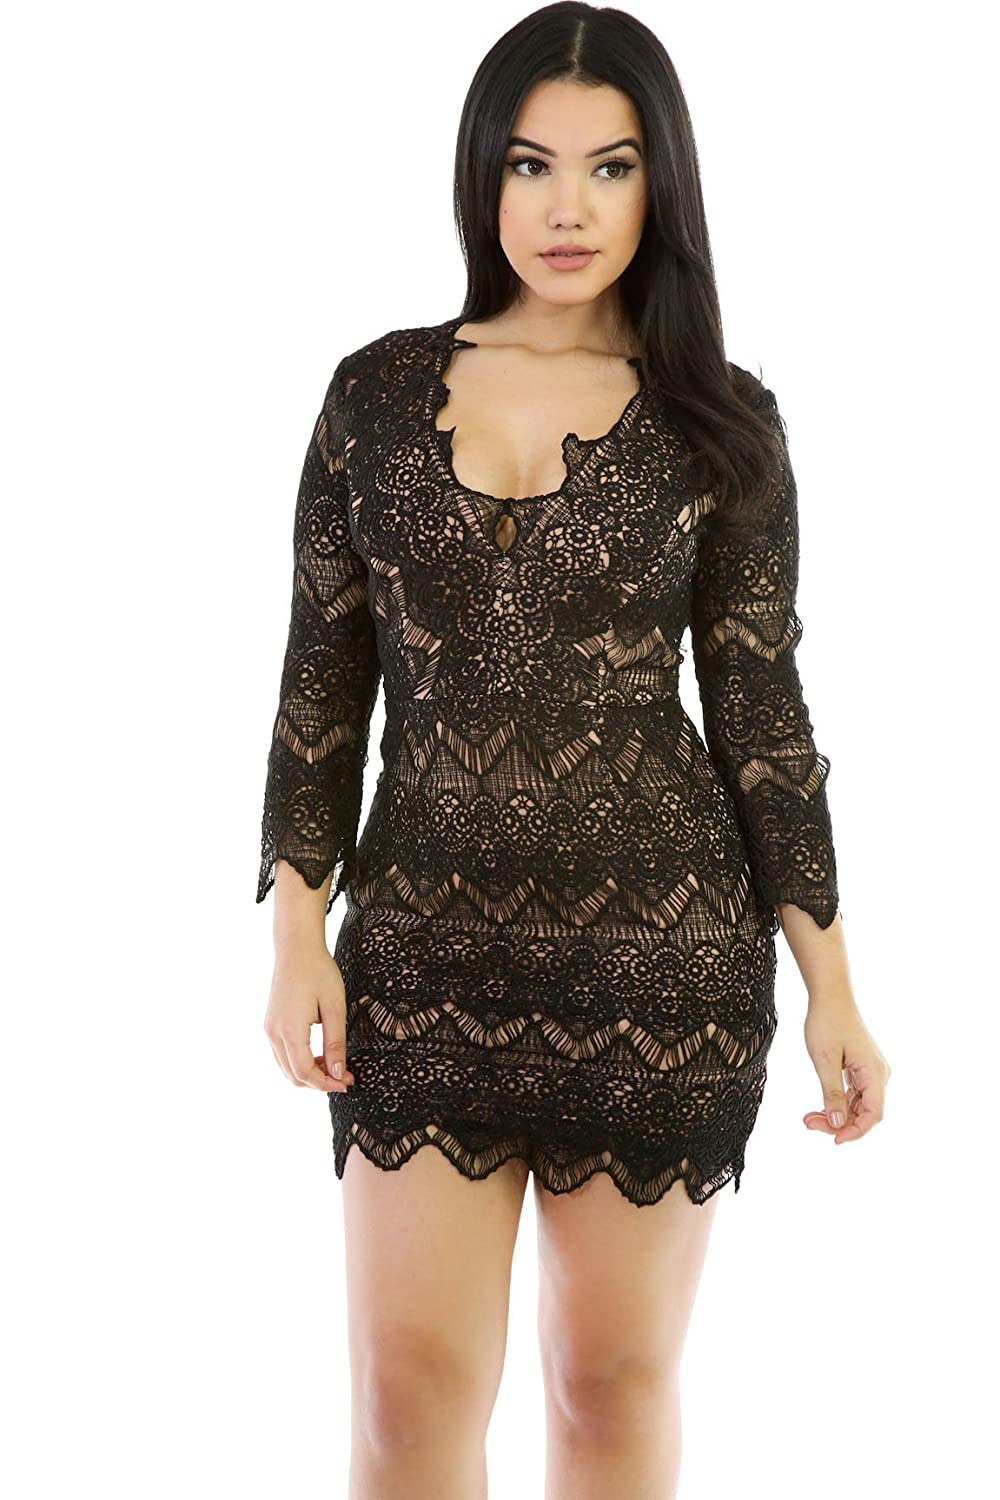 6ecb2710147 Amazon.com  You All Over Top Knit Dress  Clothing